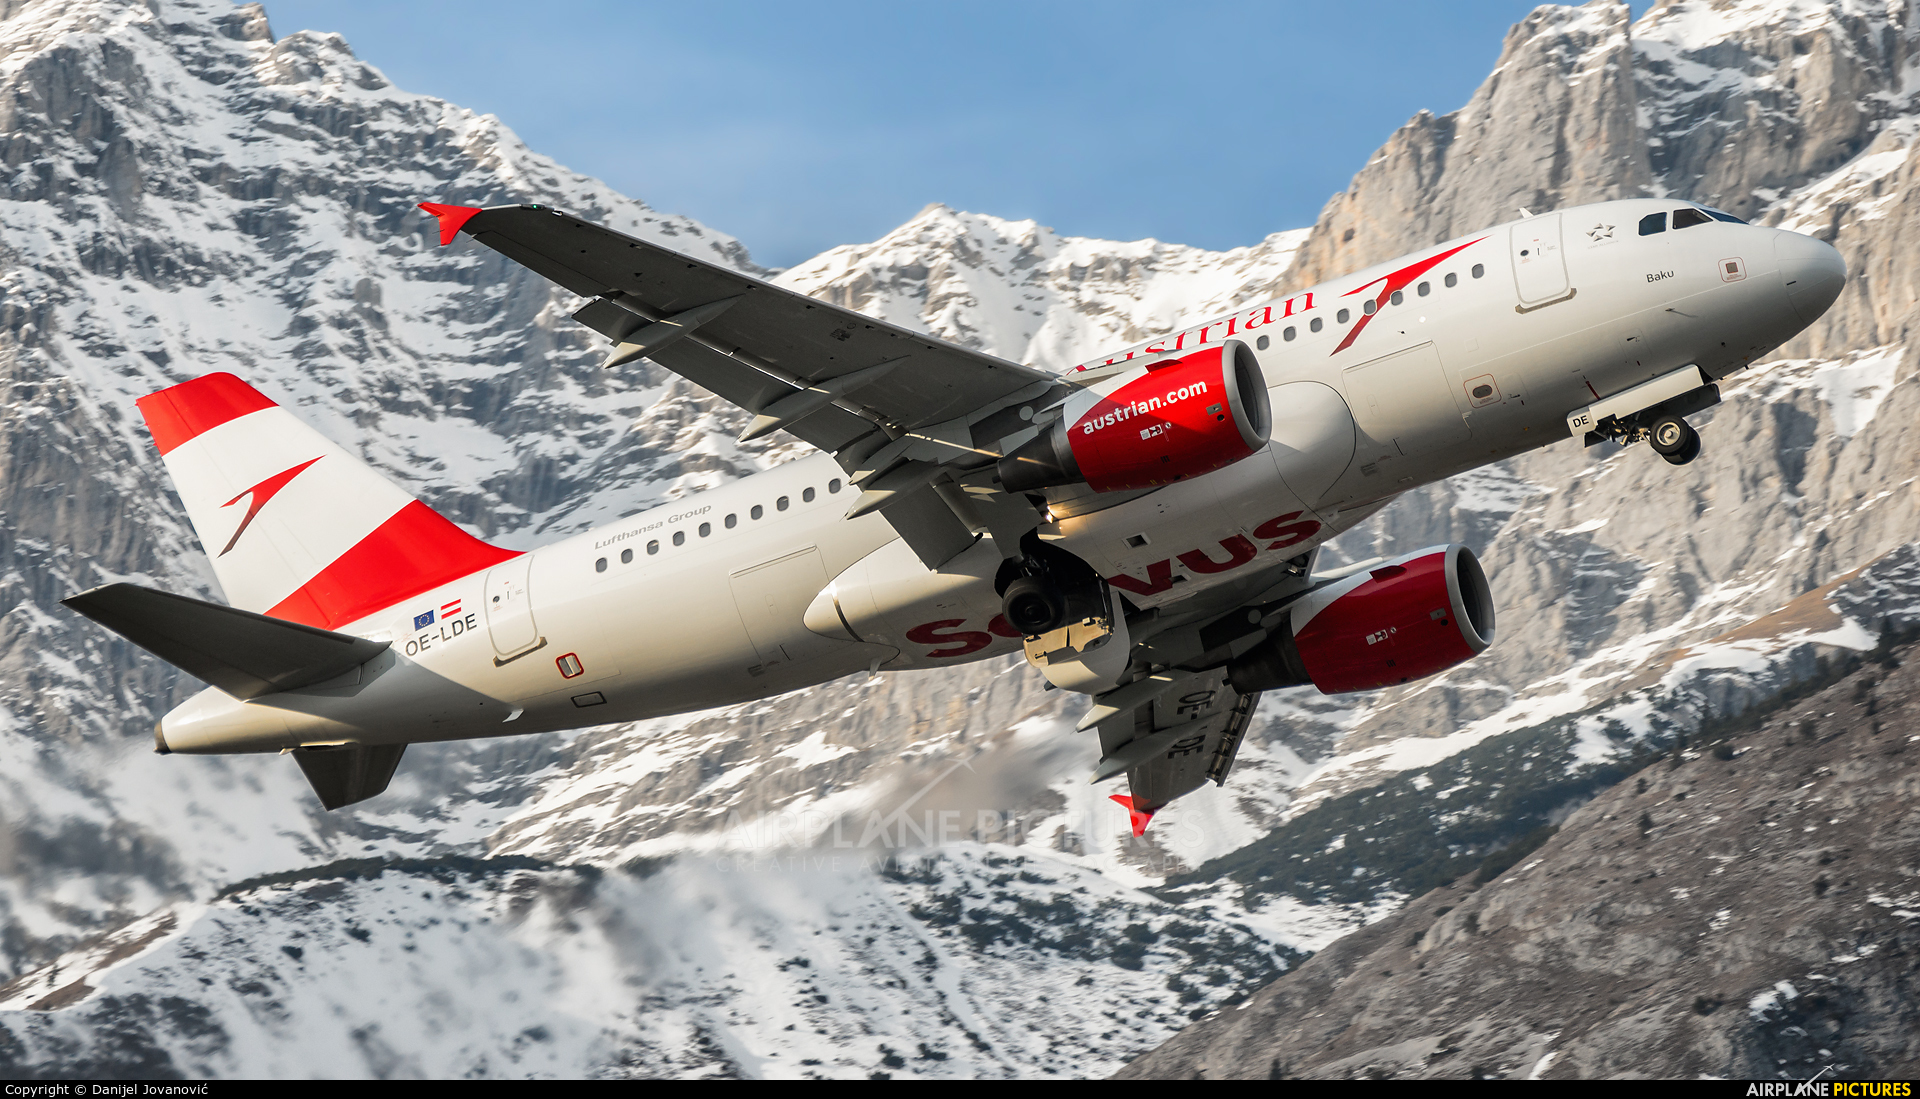 Austrian Airlines/Arrows/Tyrolean OE-LDE aircraft at Innsbruck